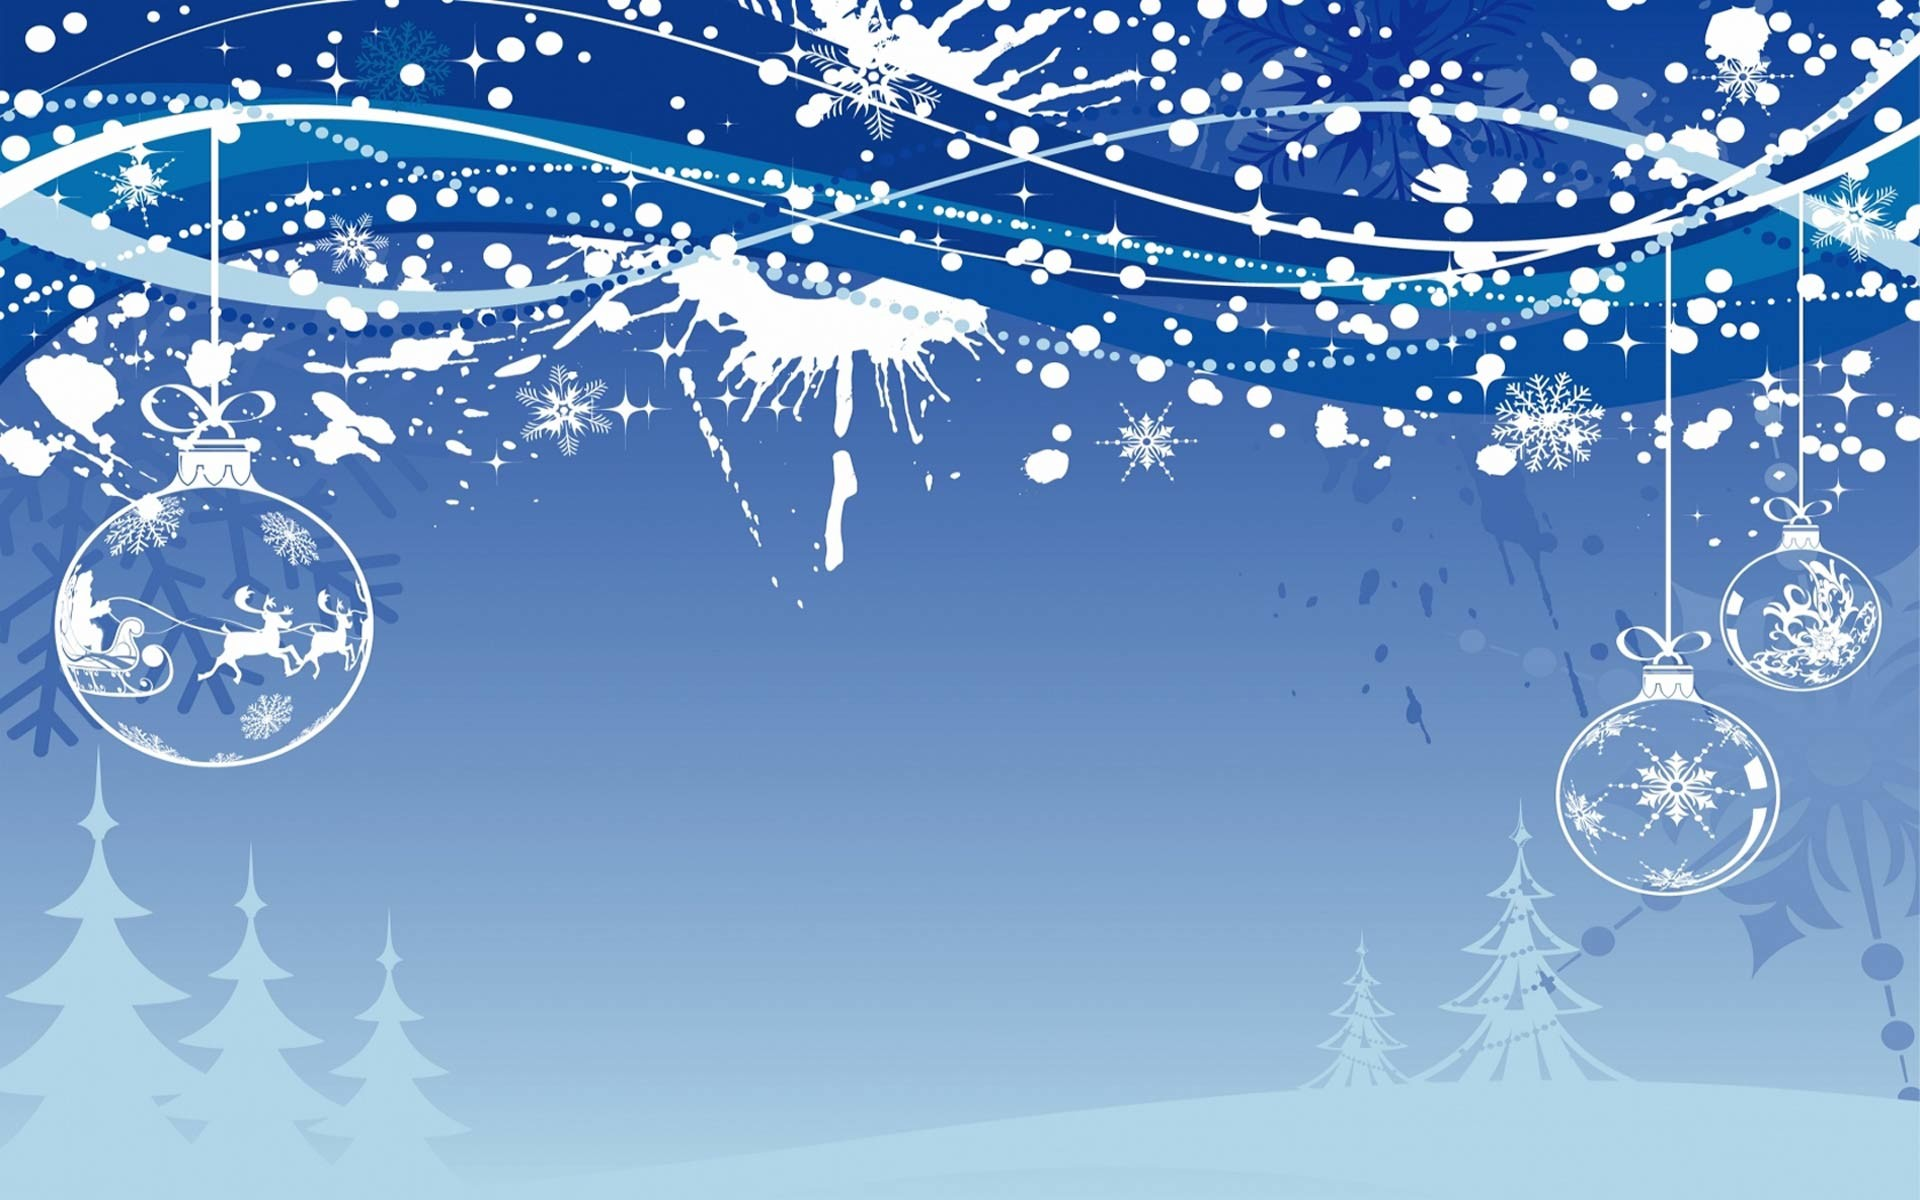 1920x1200 Free Christmas Wallpapers And Screensavers